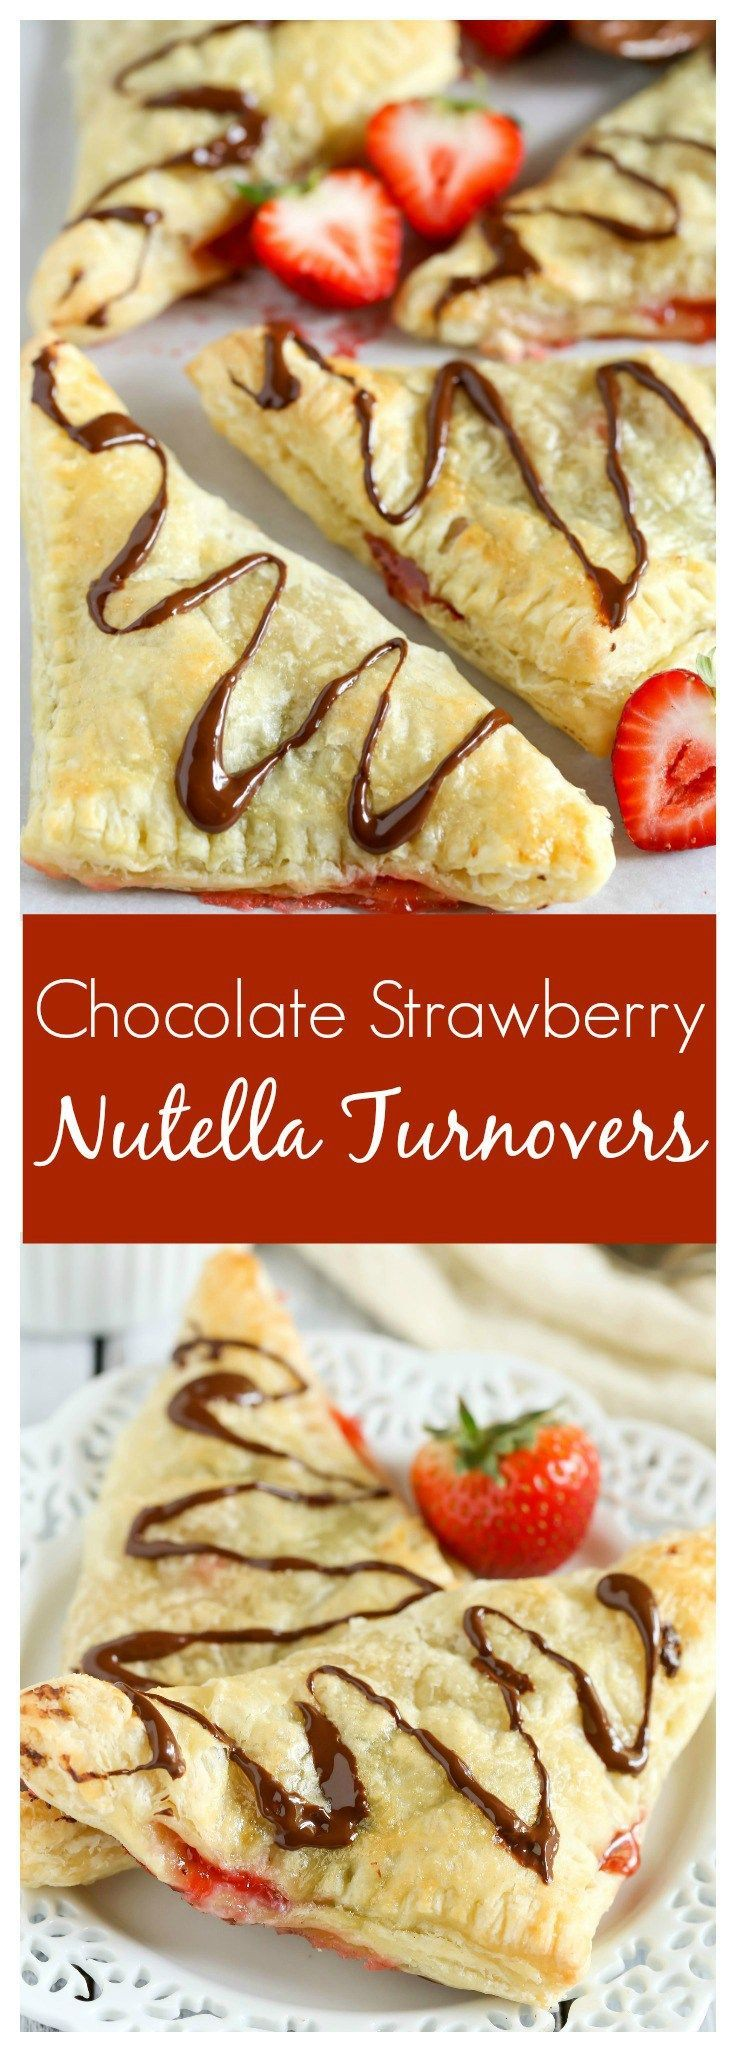 Puff pastry stuffed with chocolate, Nutella, and fresh strawberries. These Chocolate Strawberry Nutella Turnovers make one delicious and decadent dessert! pastry stuffed with chocolate, Nutella, and fresh strawberries. These Chocolate Strawberry Nutella Turnovers make one delicious and decadent dessert!